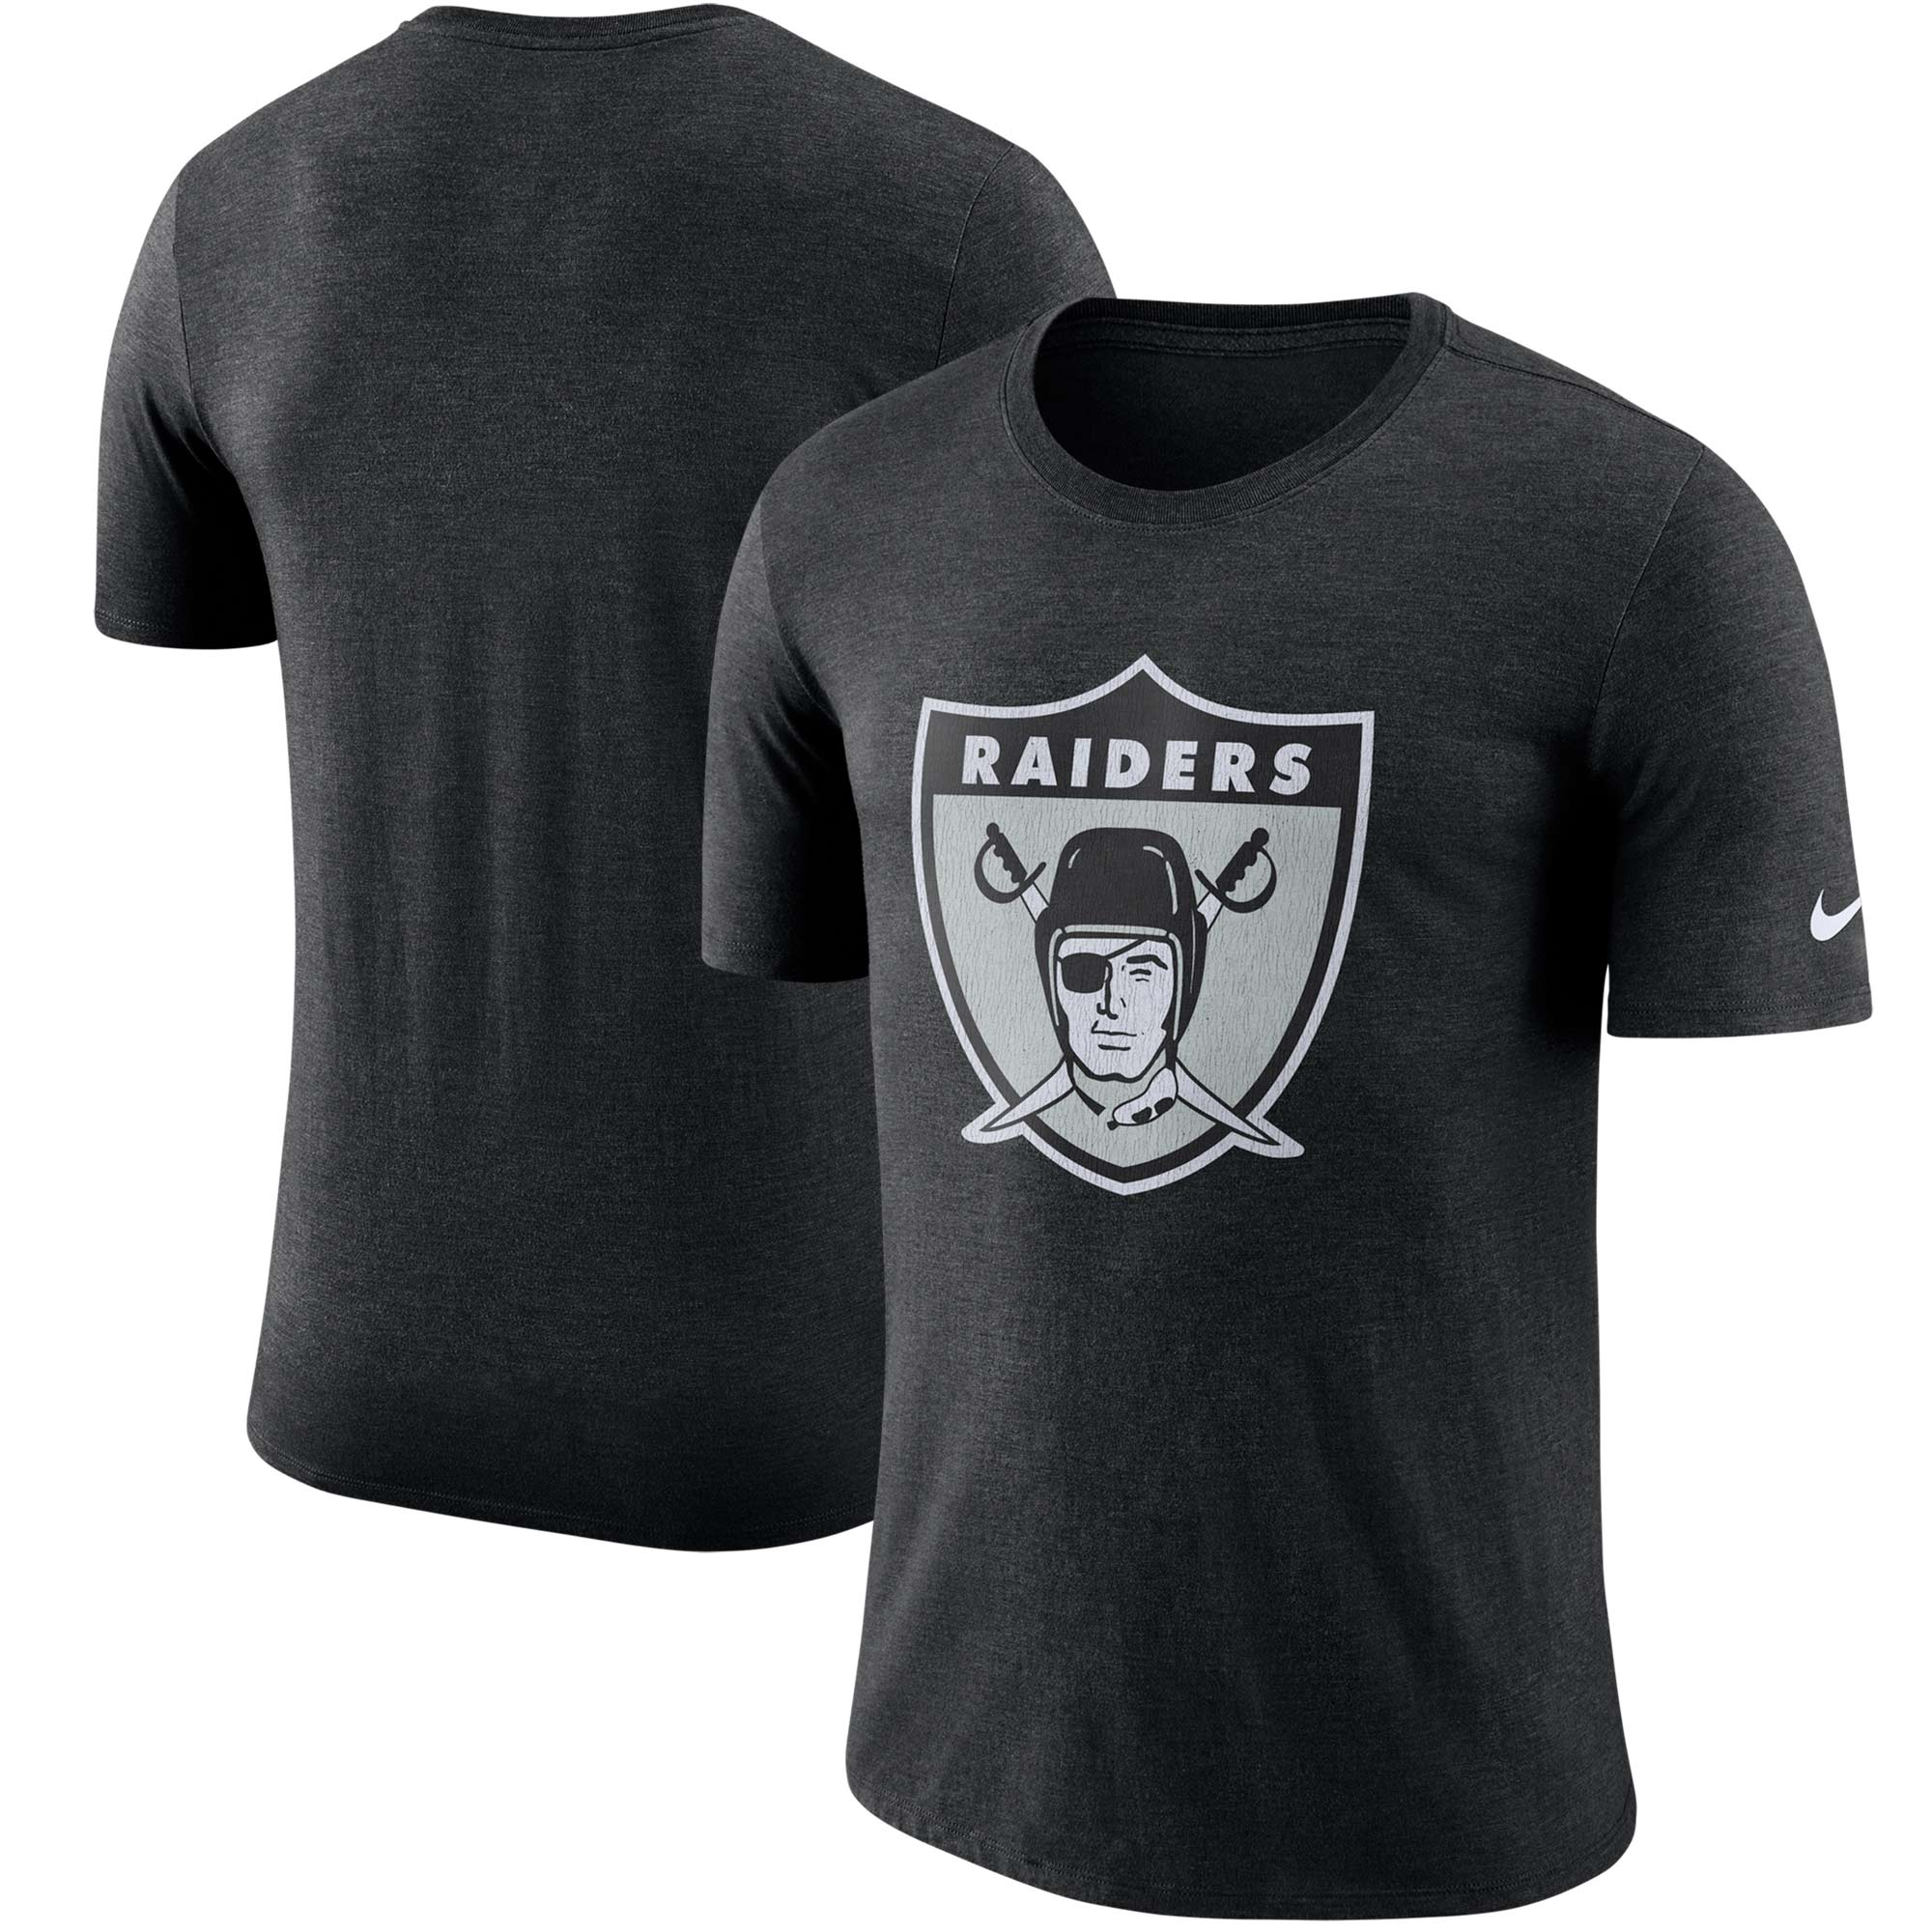 Oakland Raiders Nike Historic Tri-Blend Crackle T-Shirt - Heathered Black